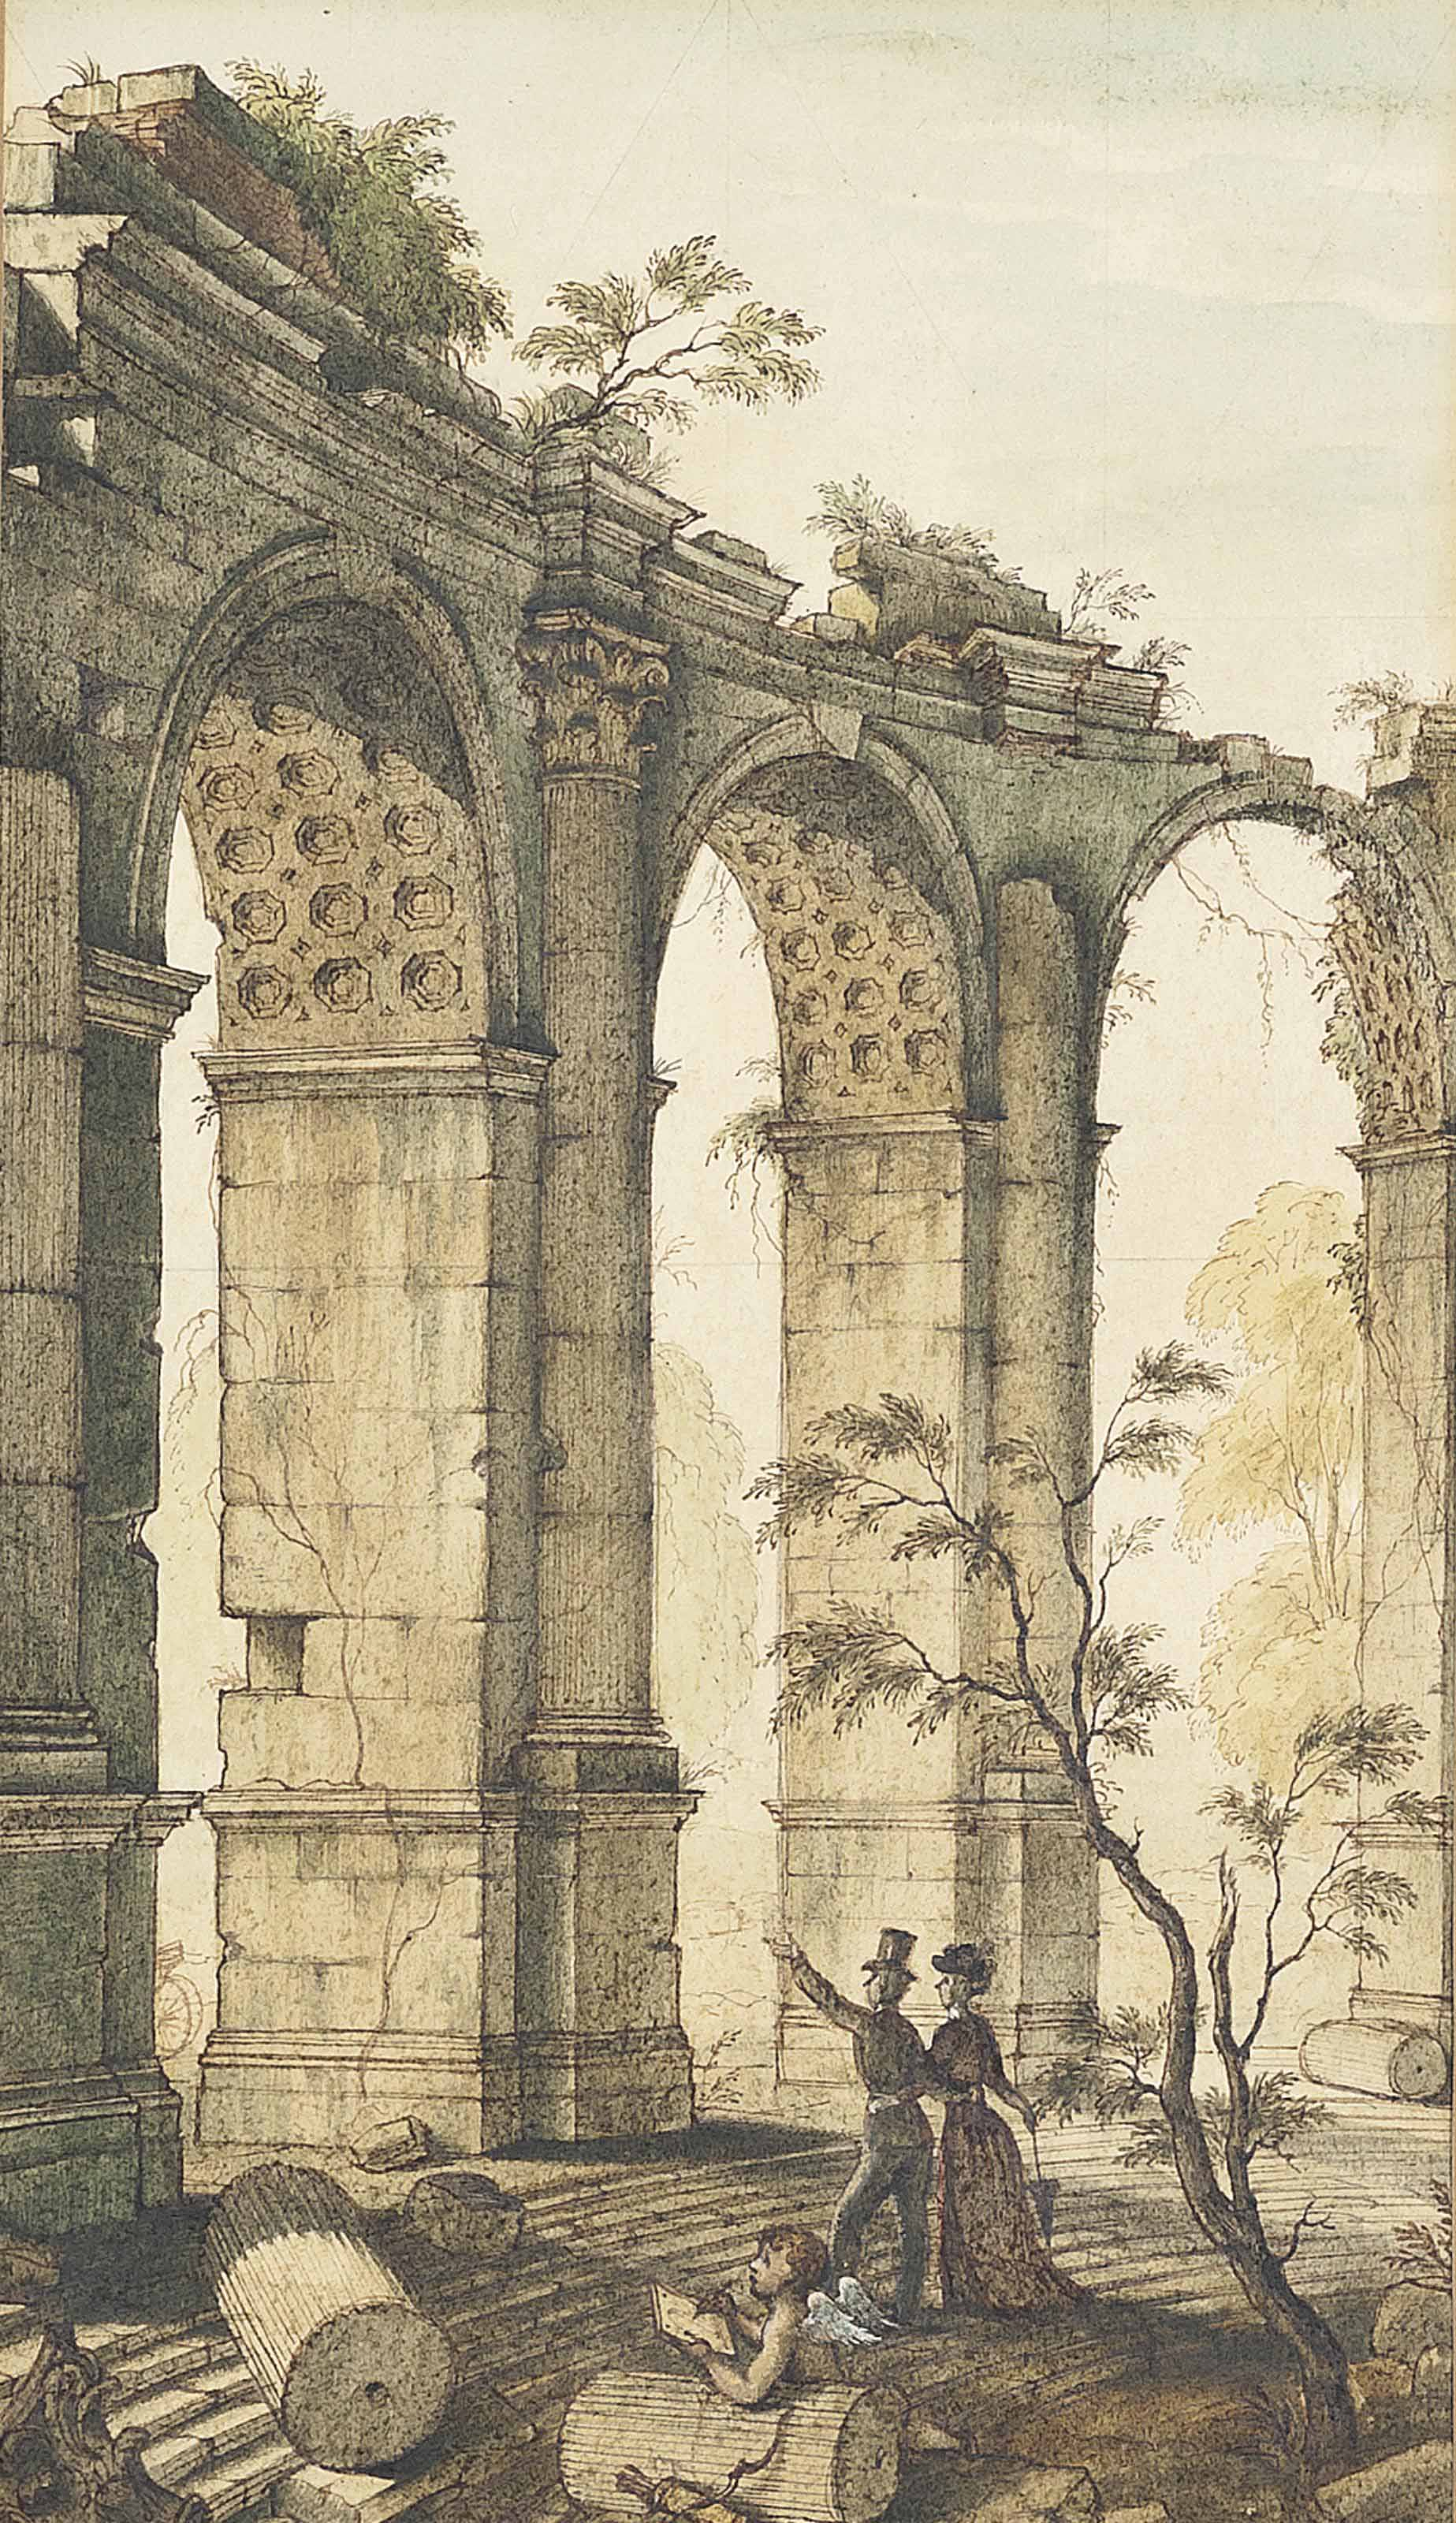 The Honeymoon (recto); and A sketch of a nude classical goddess and architecture (verso)